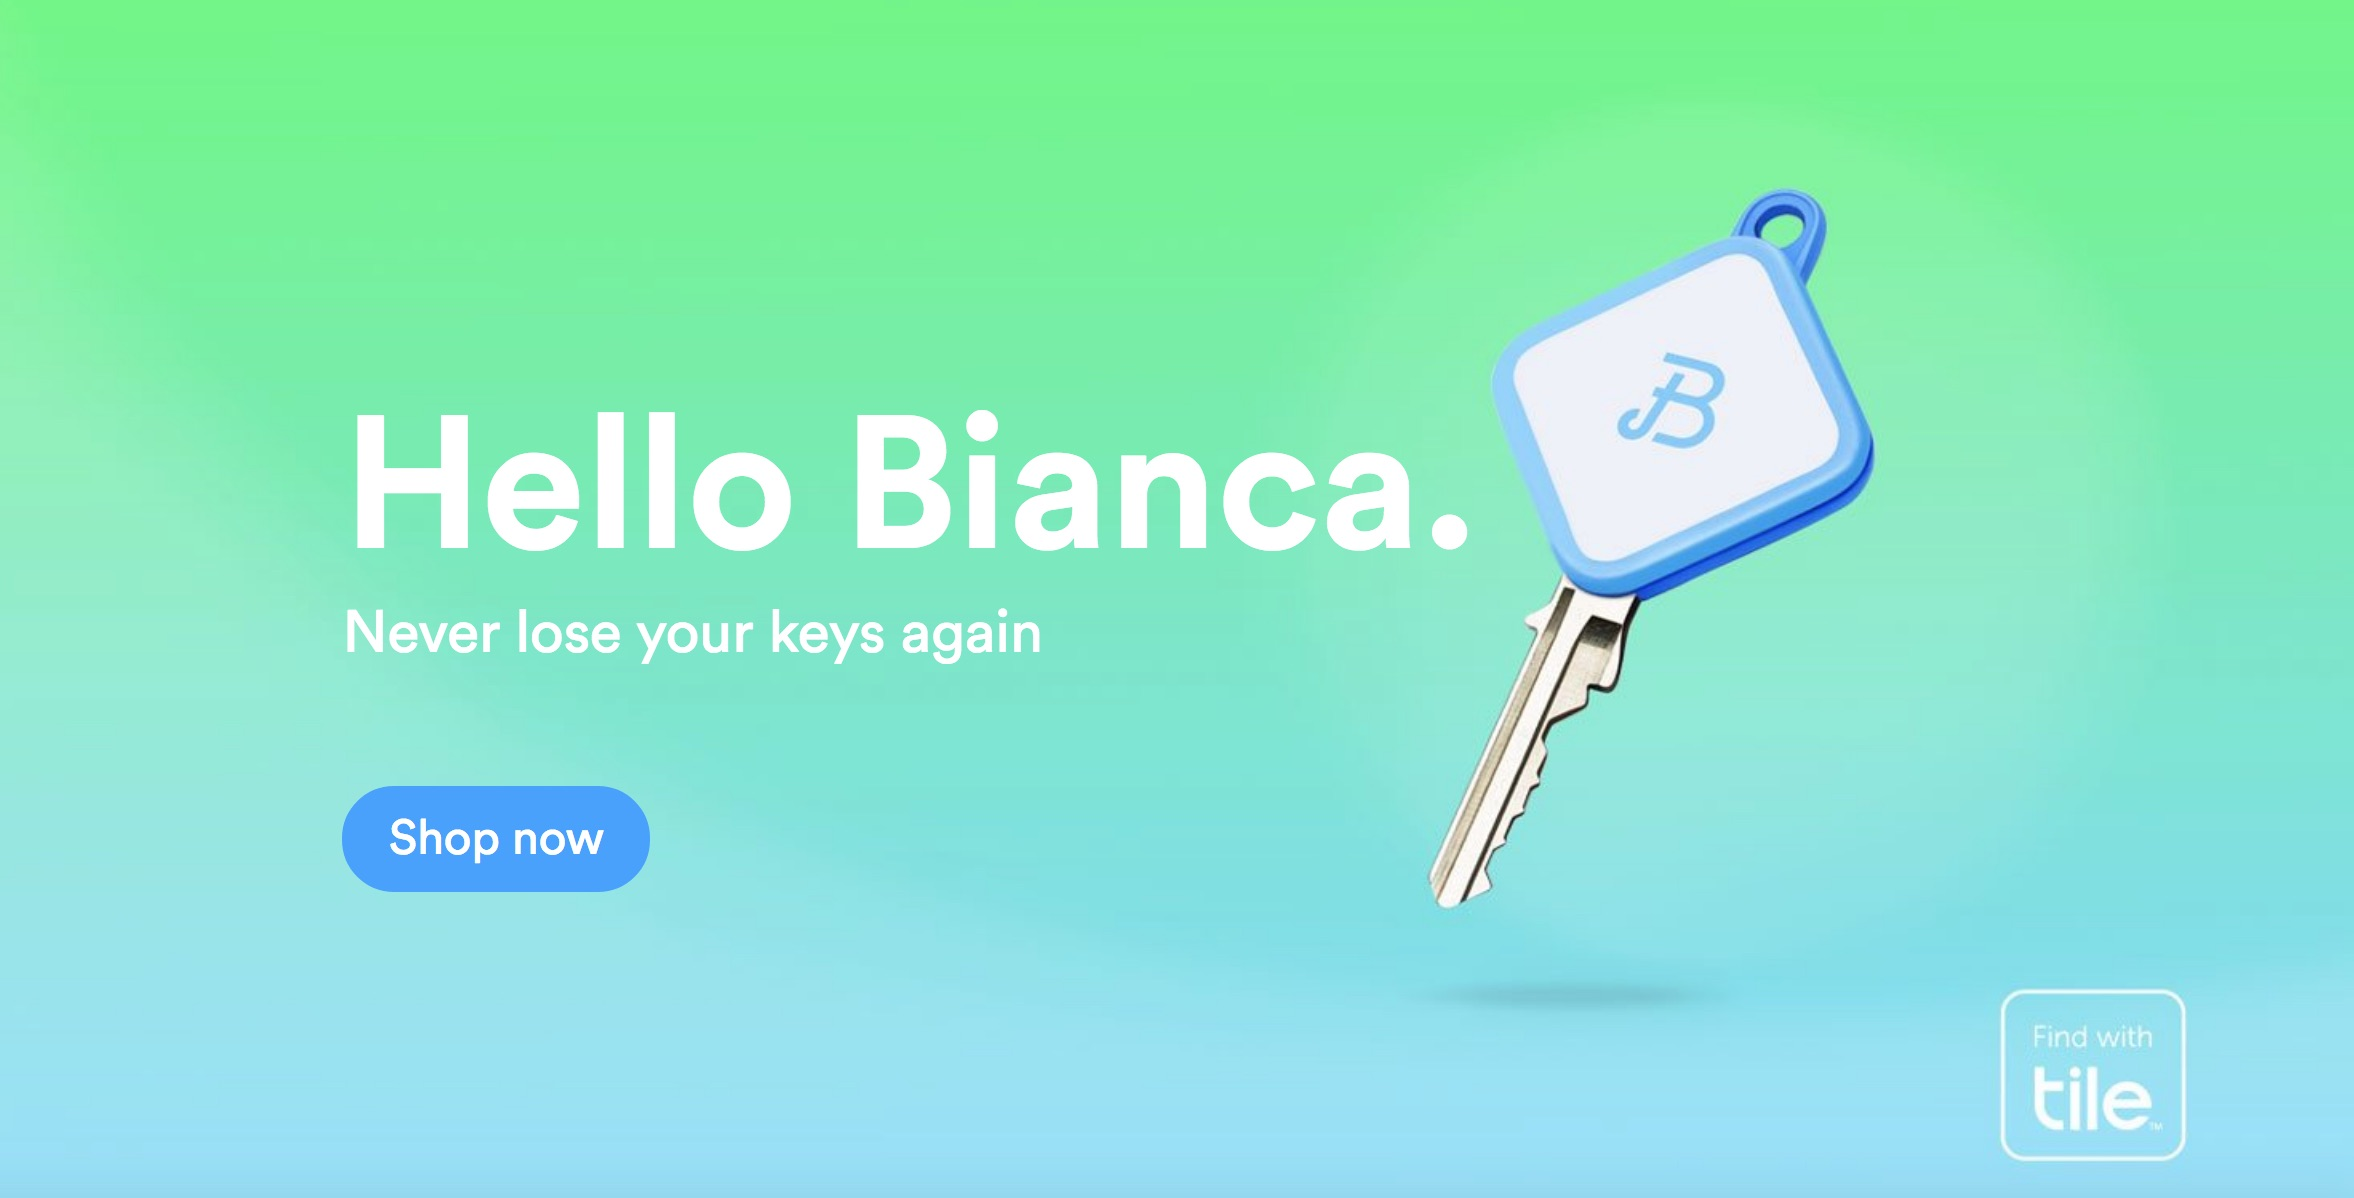 Never lose your keys again with Bianca Keys. Call to order at 800-985-9531